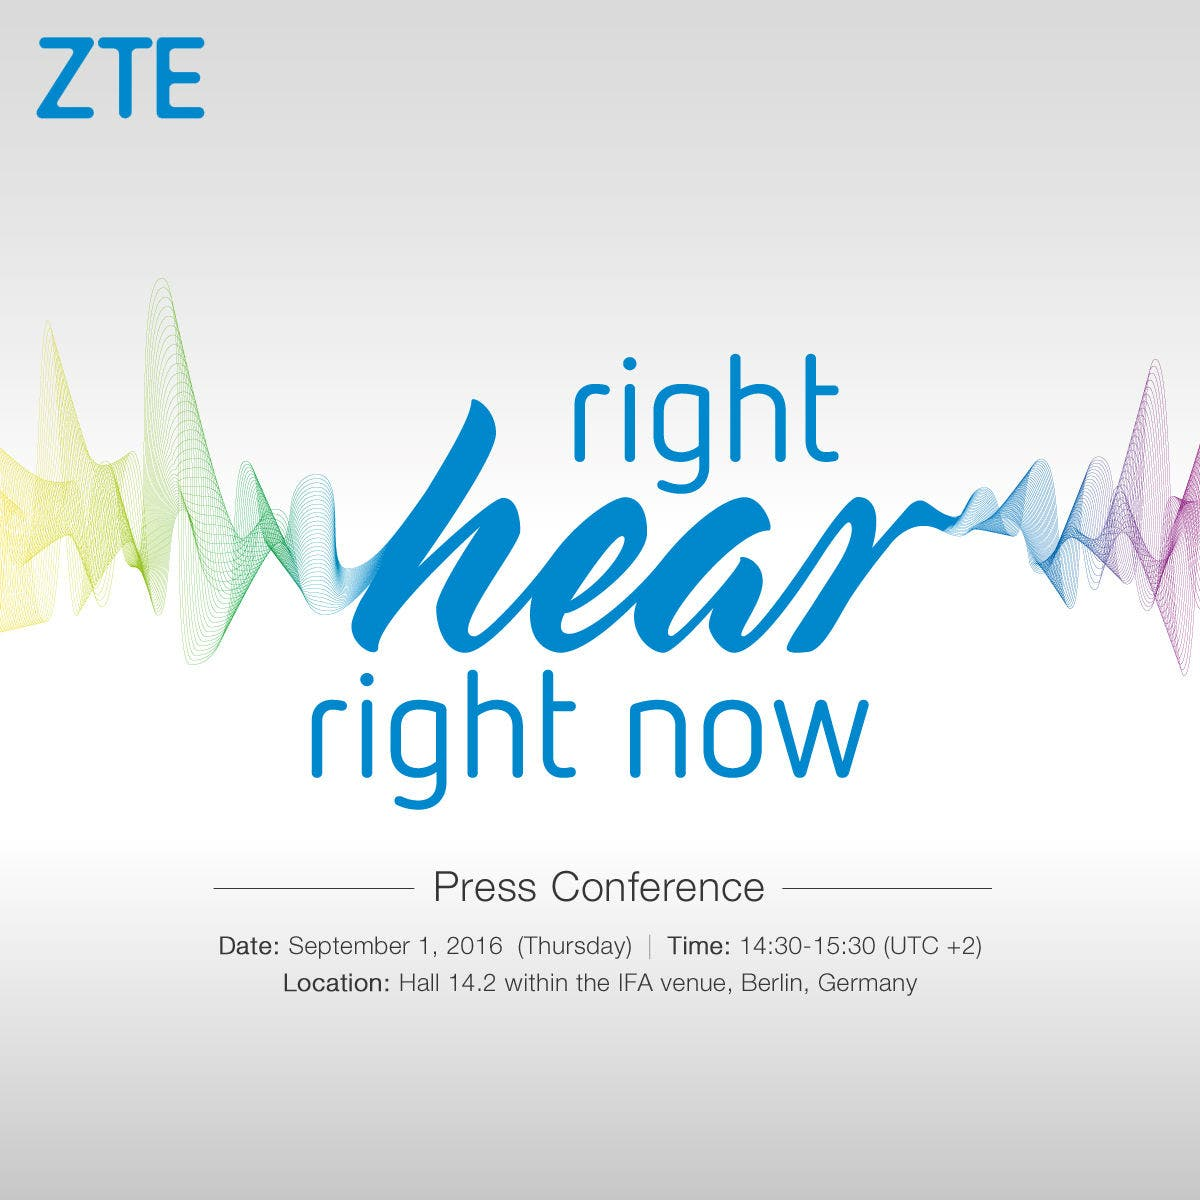 zte right hear right now